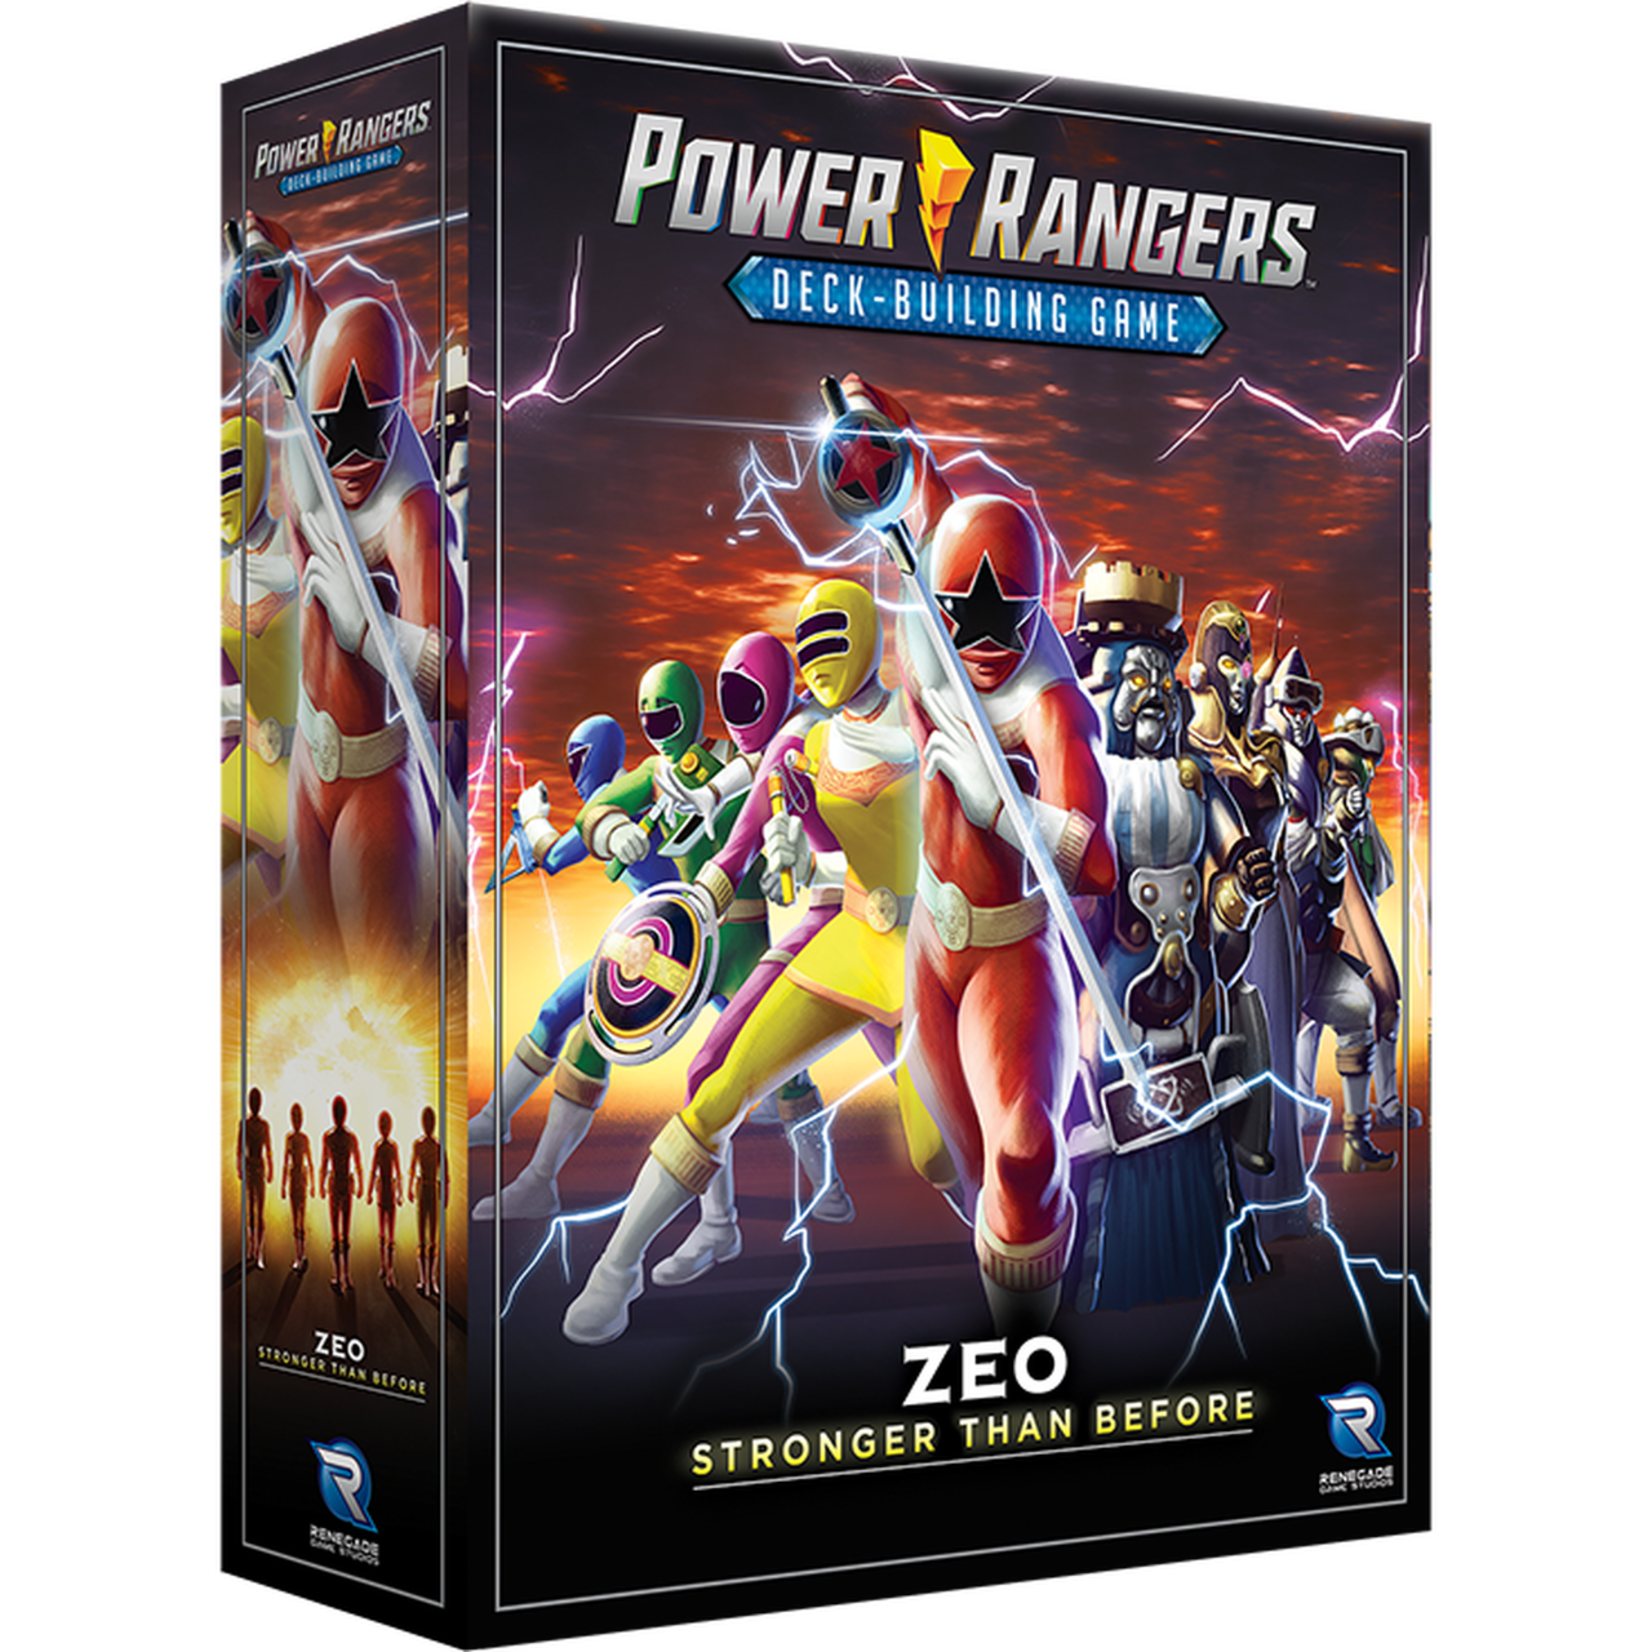 Renegade Power Rangers Deck-Buidling Game: Zeo Stronger Than Before